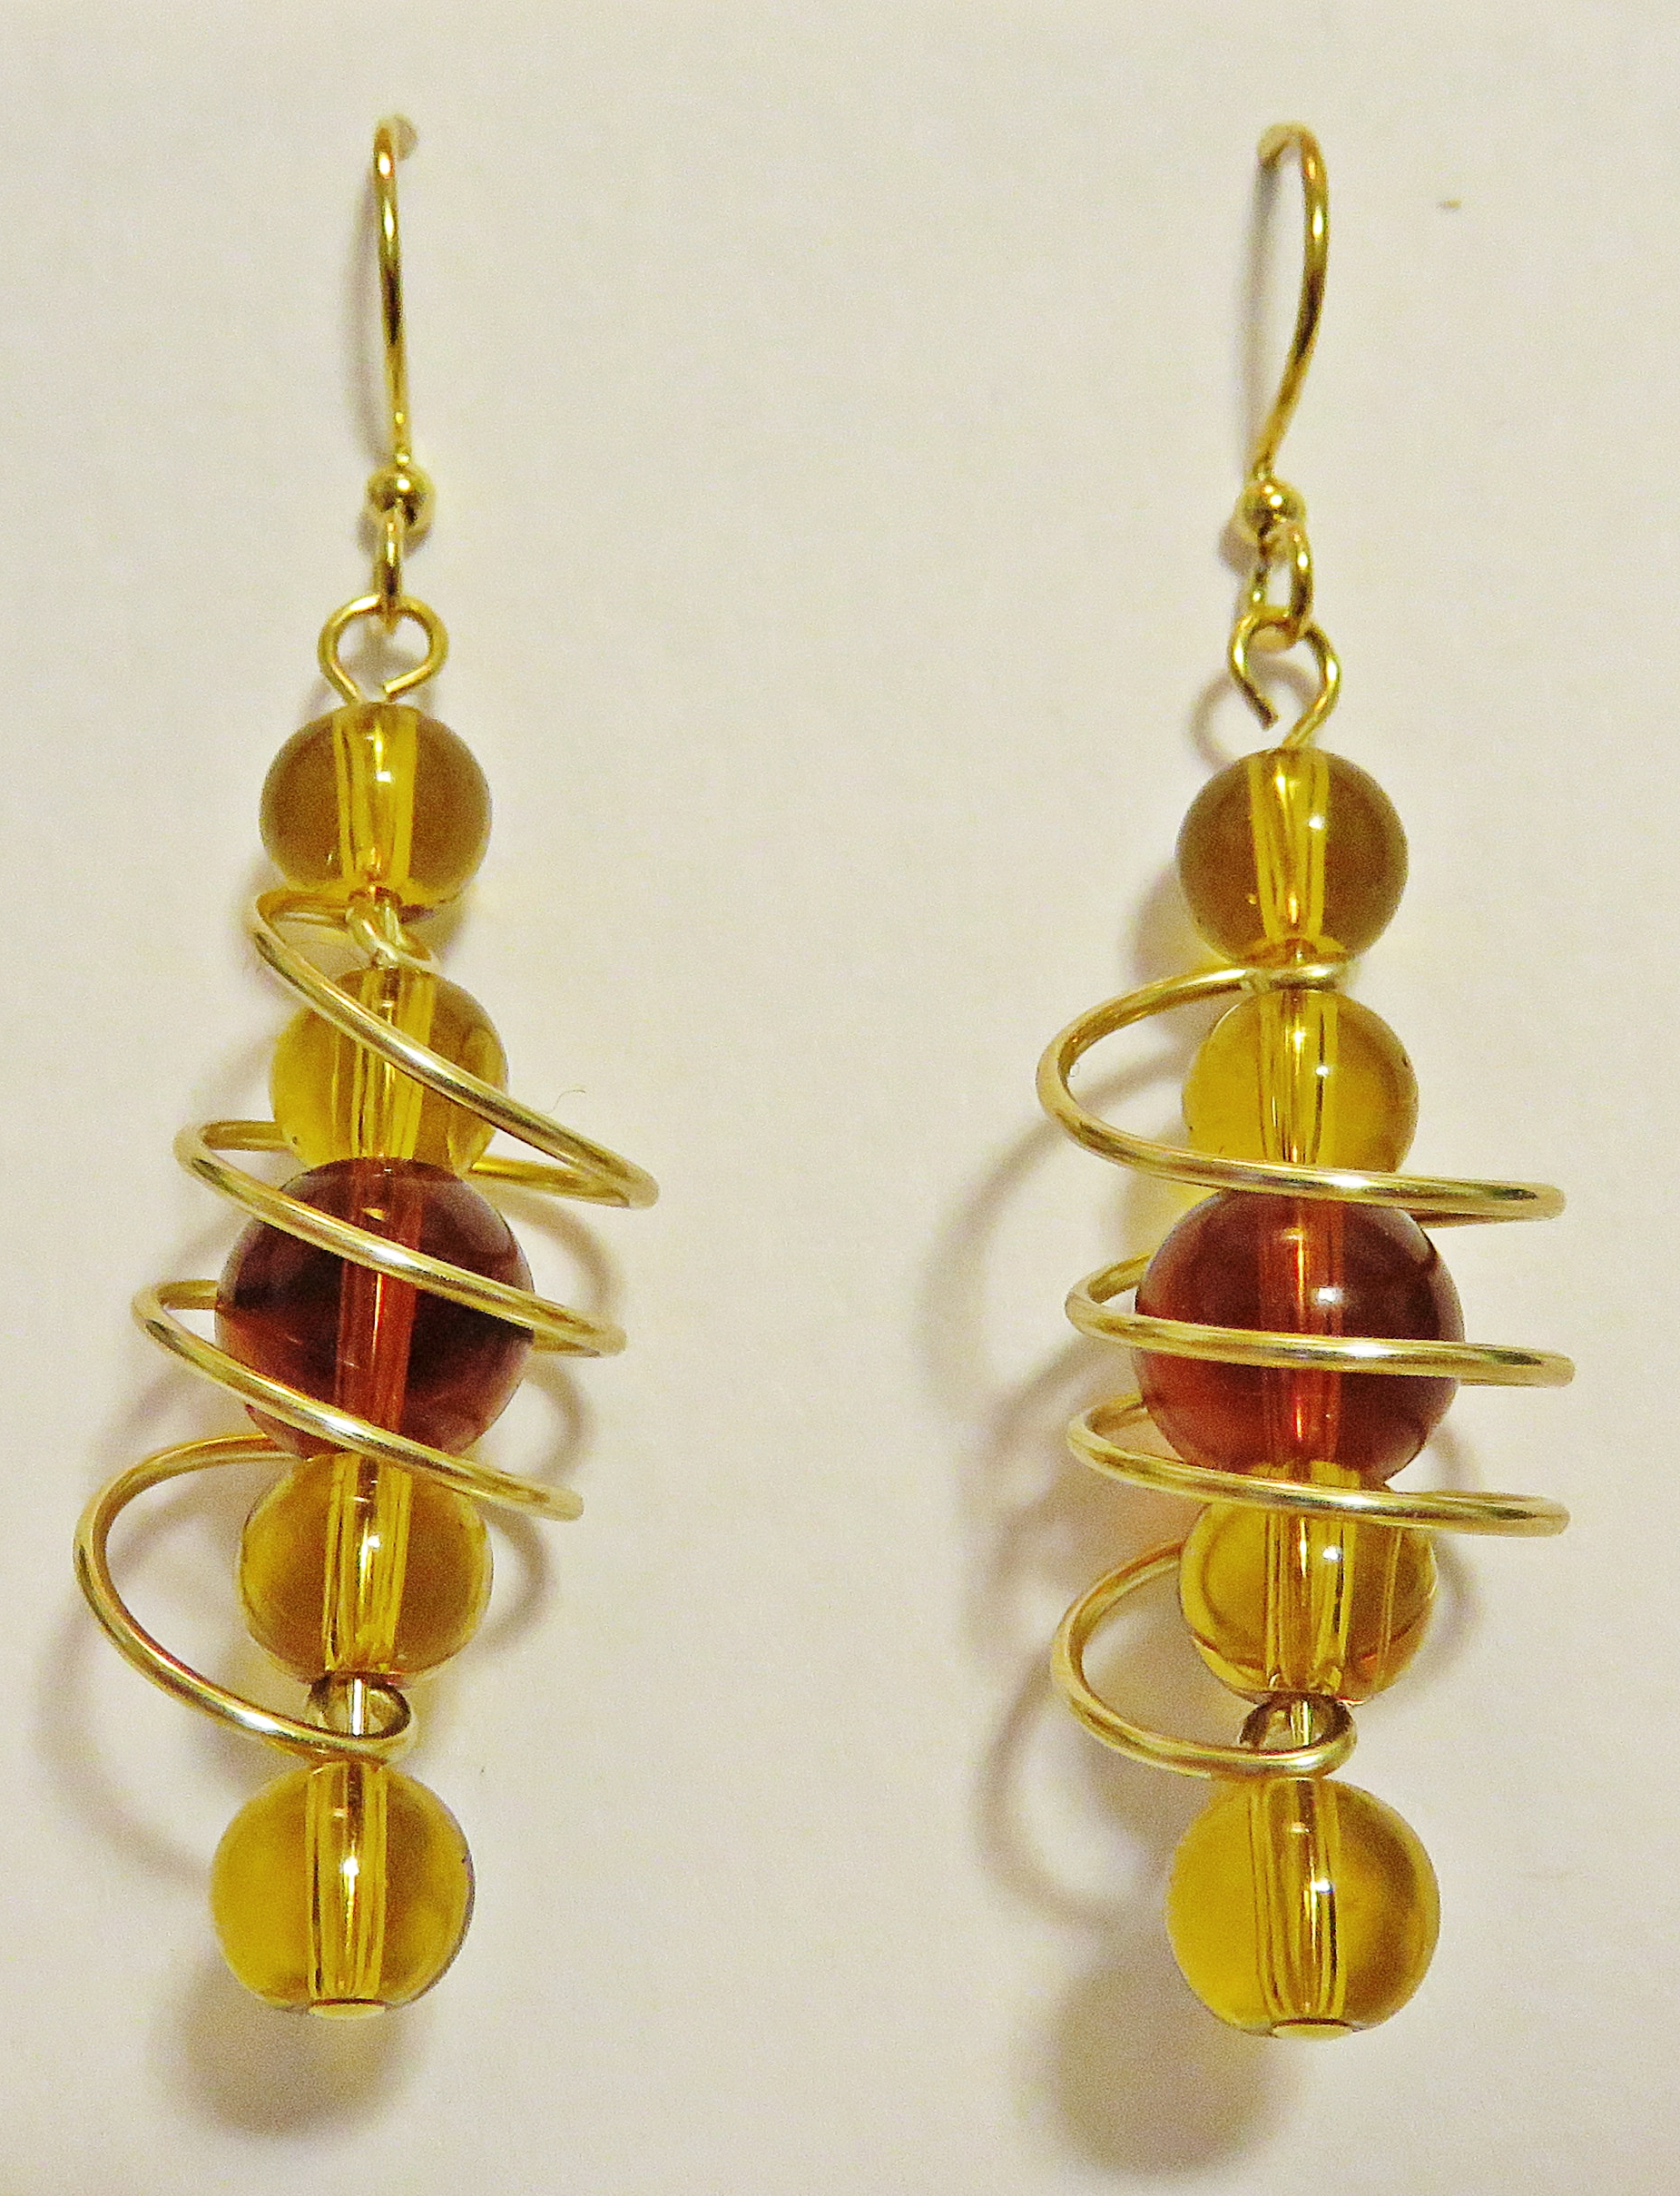 Amber-coloured freeform coil earring